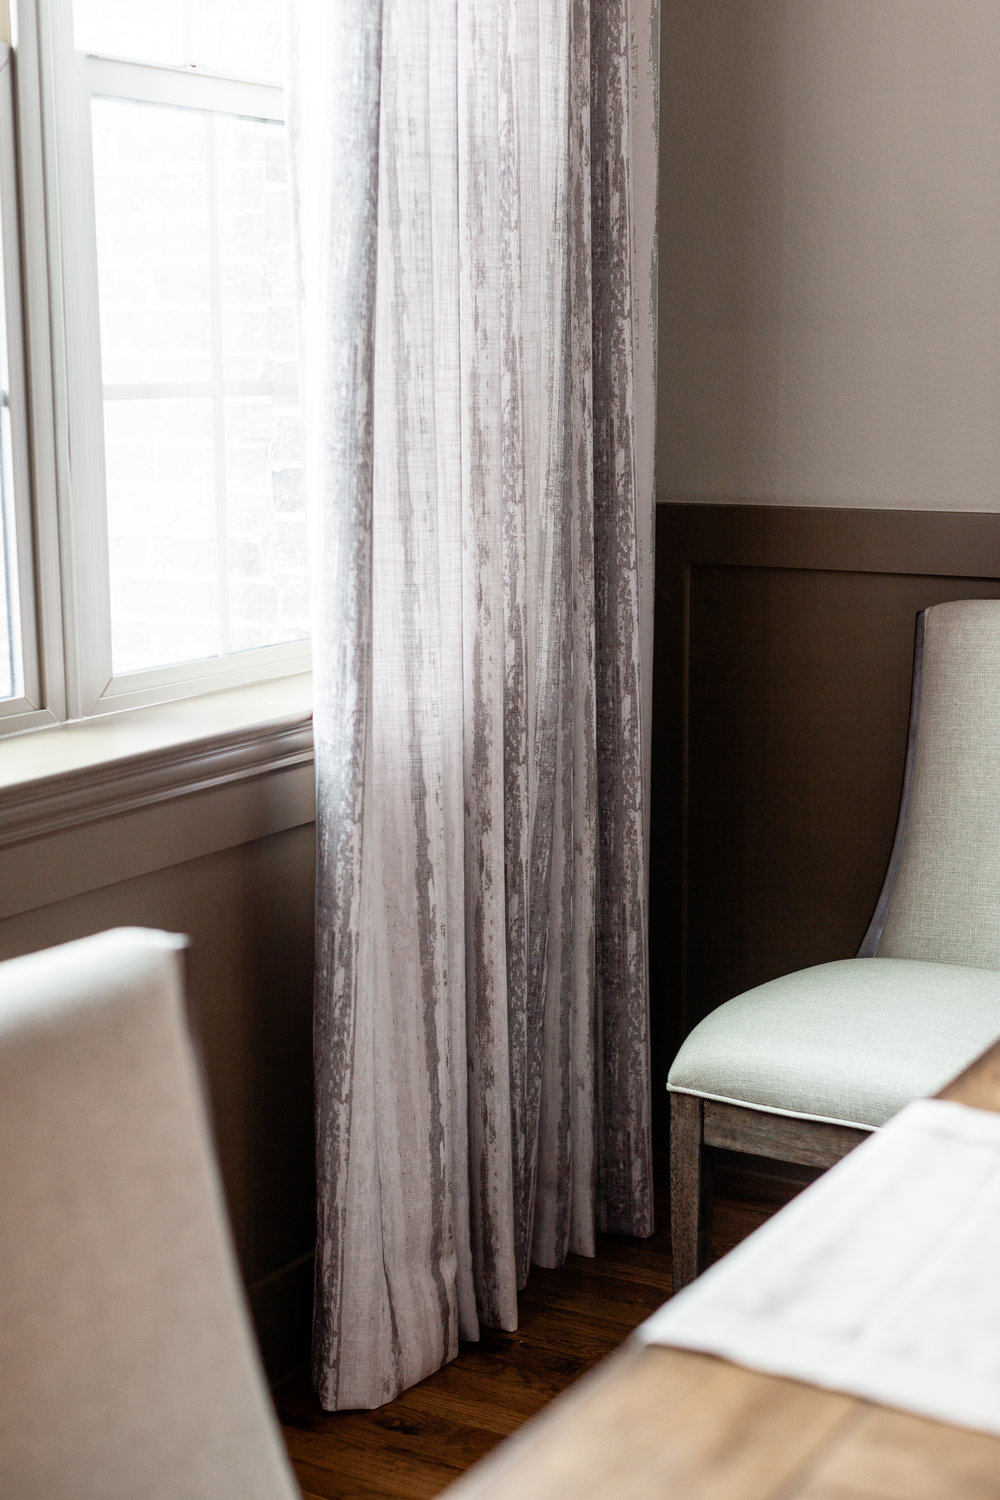 Custom window treatments combine both the millwork and wall colors.